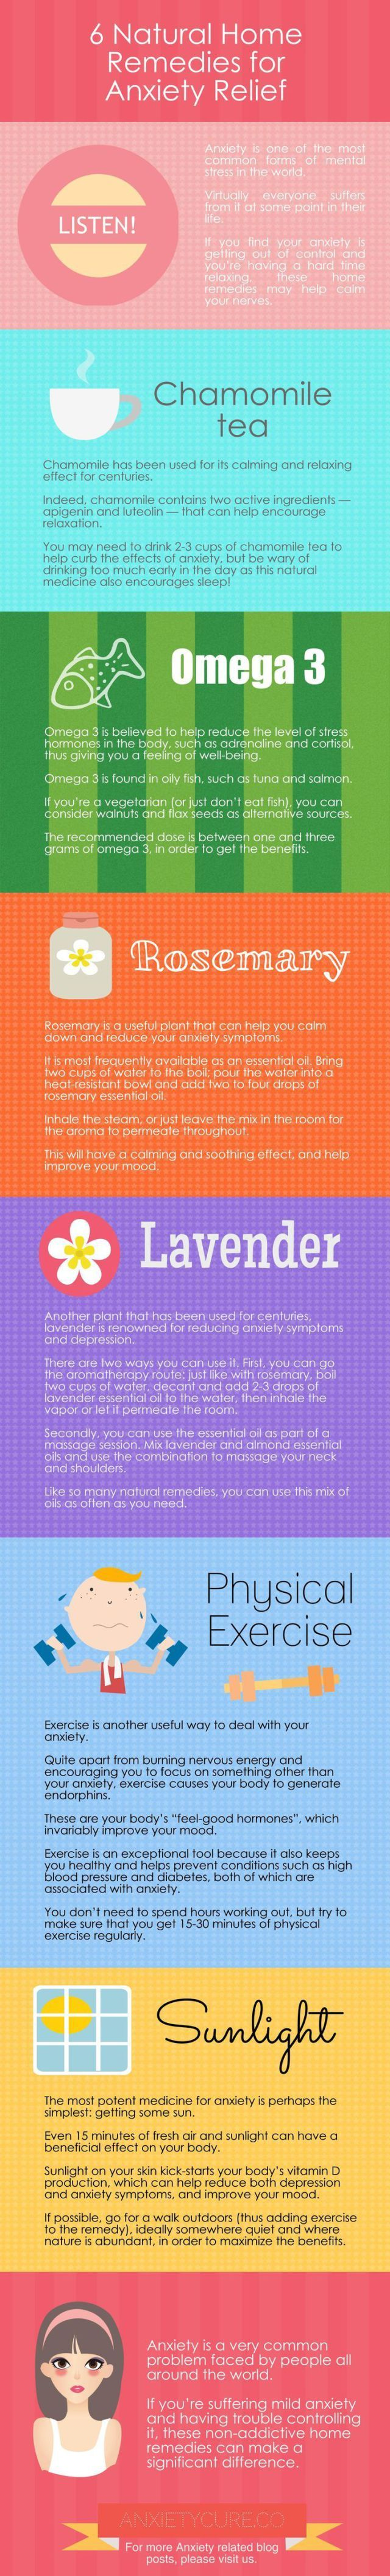 Psychology : 6 Natural Home Remedies for Anxiety Relief Infographic #anxiety